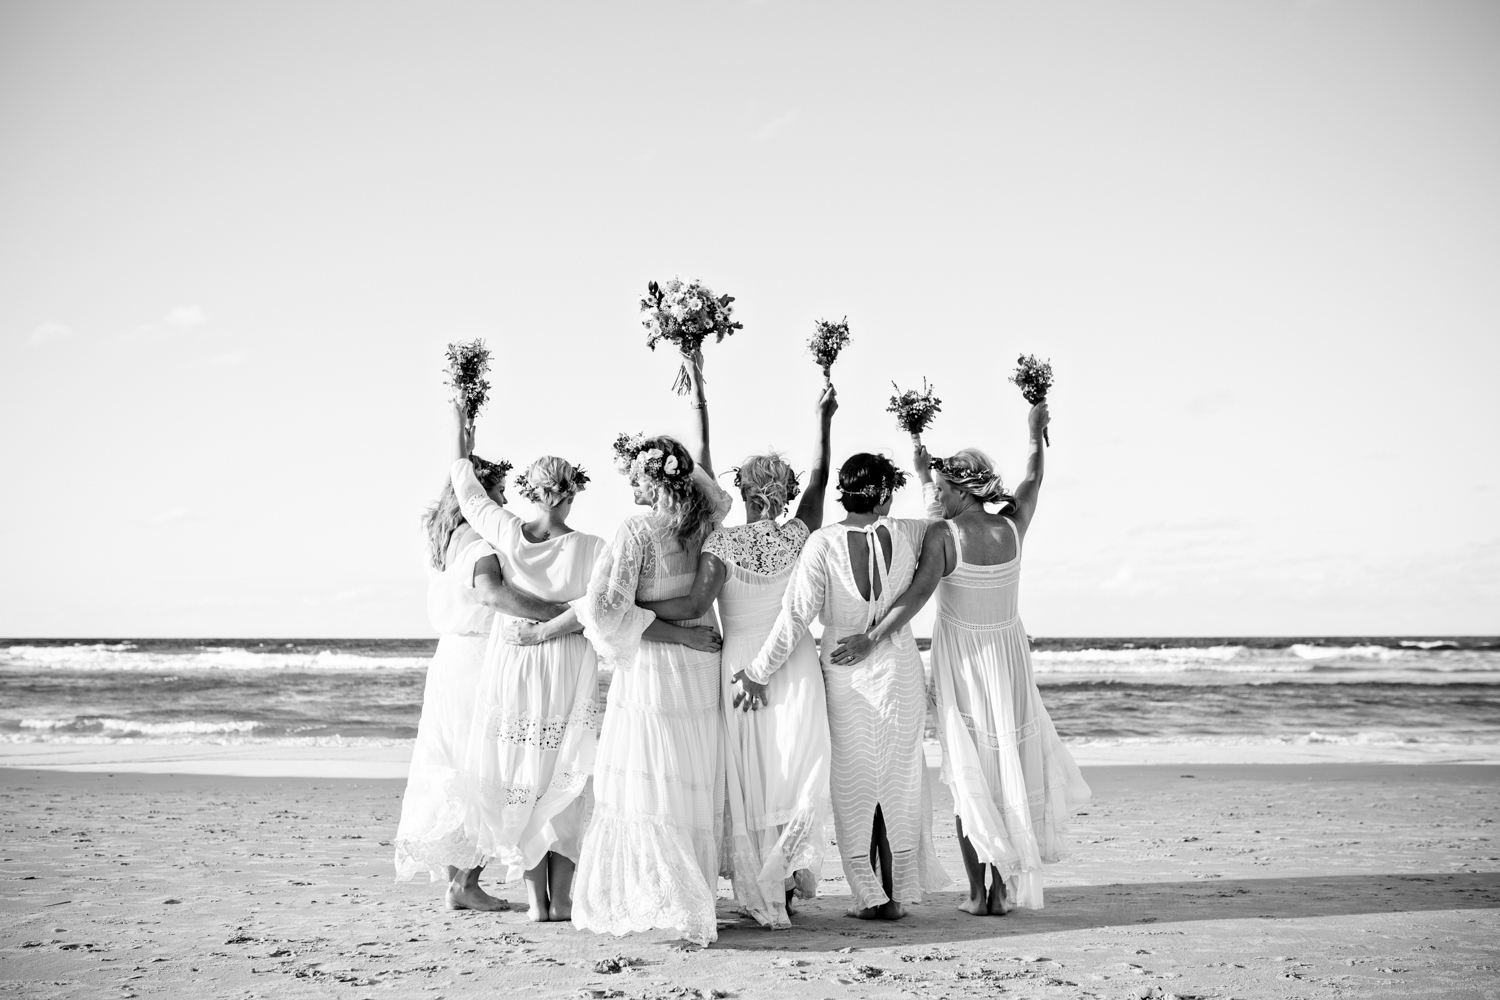 bridesmaids hold their bouquets in the air celebrating the wedding of the bride.